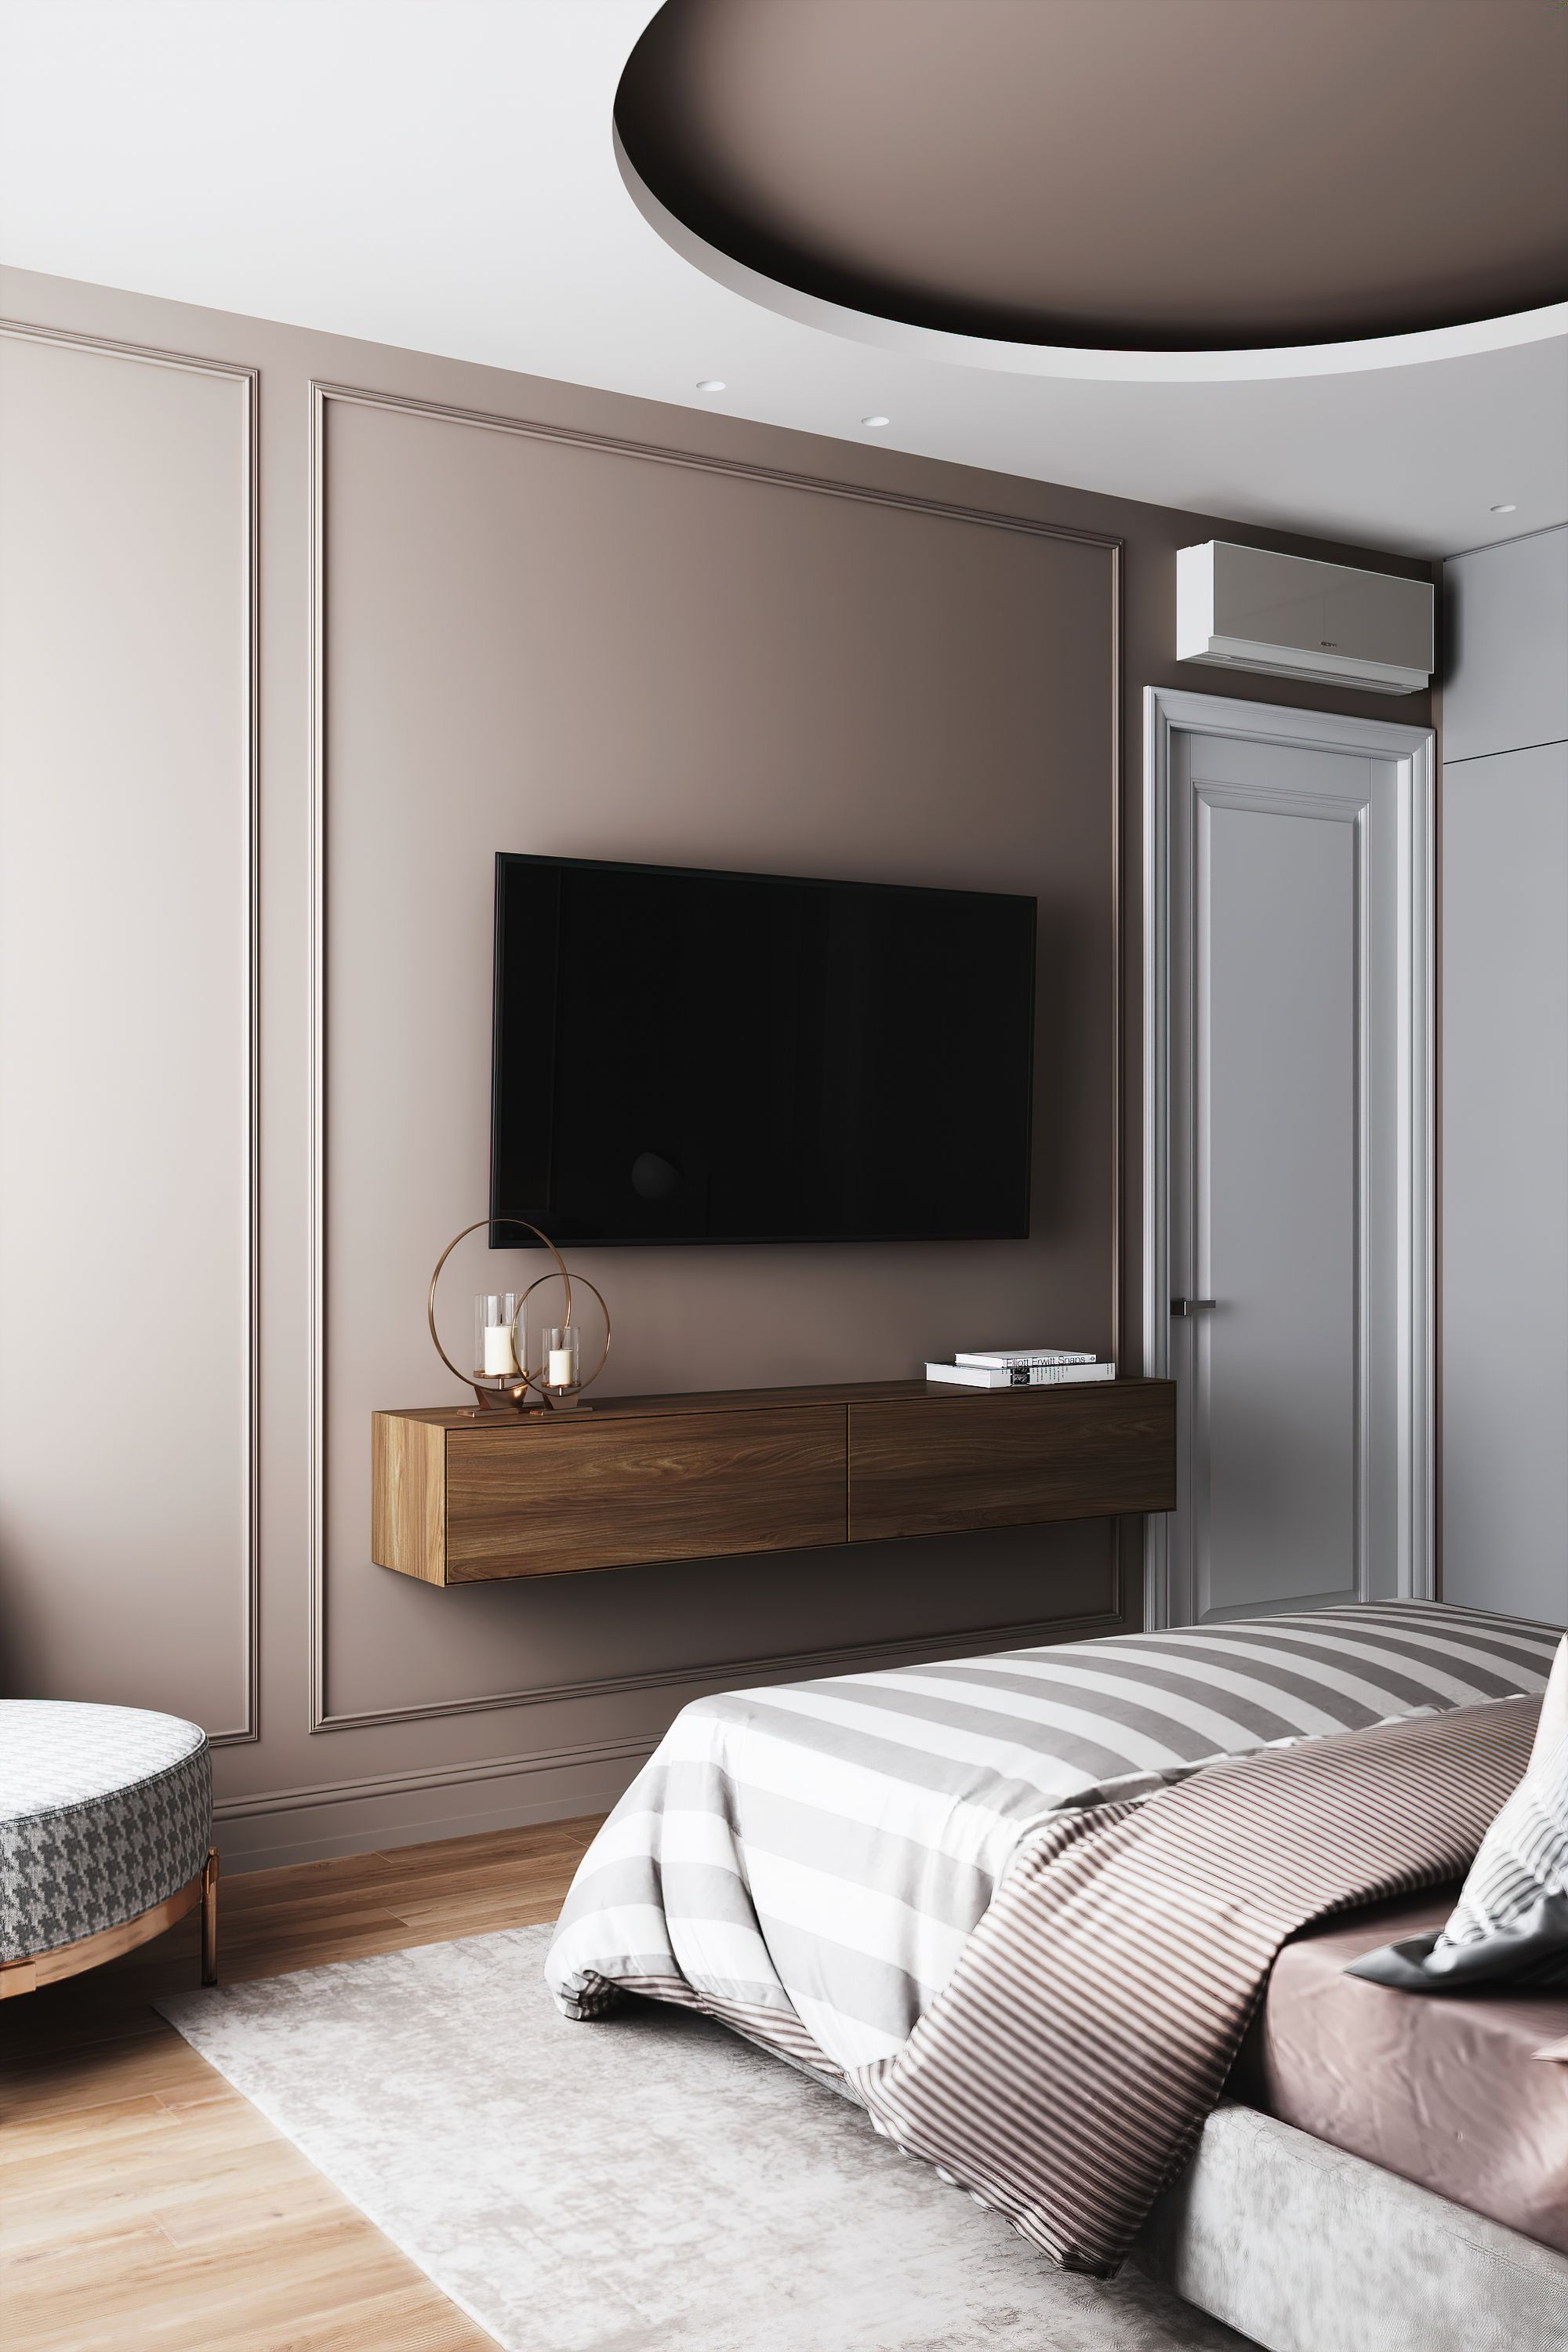 20 Modern And Cozy Bedroom Design Ideas Luxurious Bedrooms Cozy Bedroom Design Home Room Design Luxury room paint inspiration